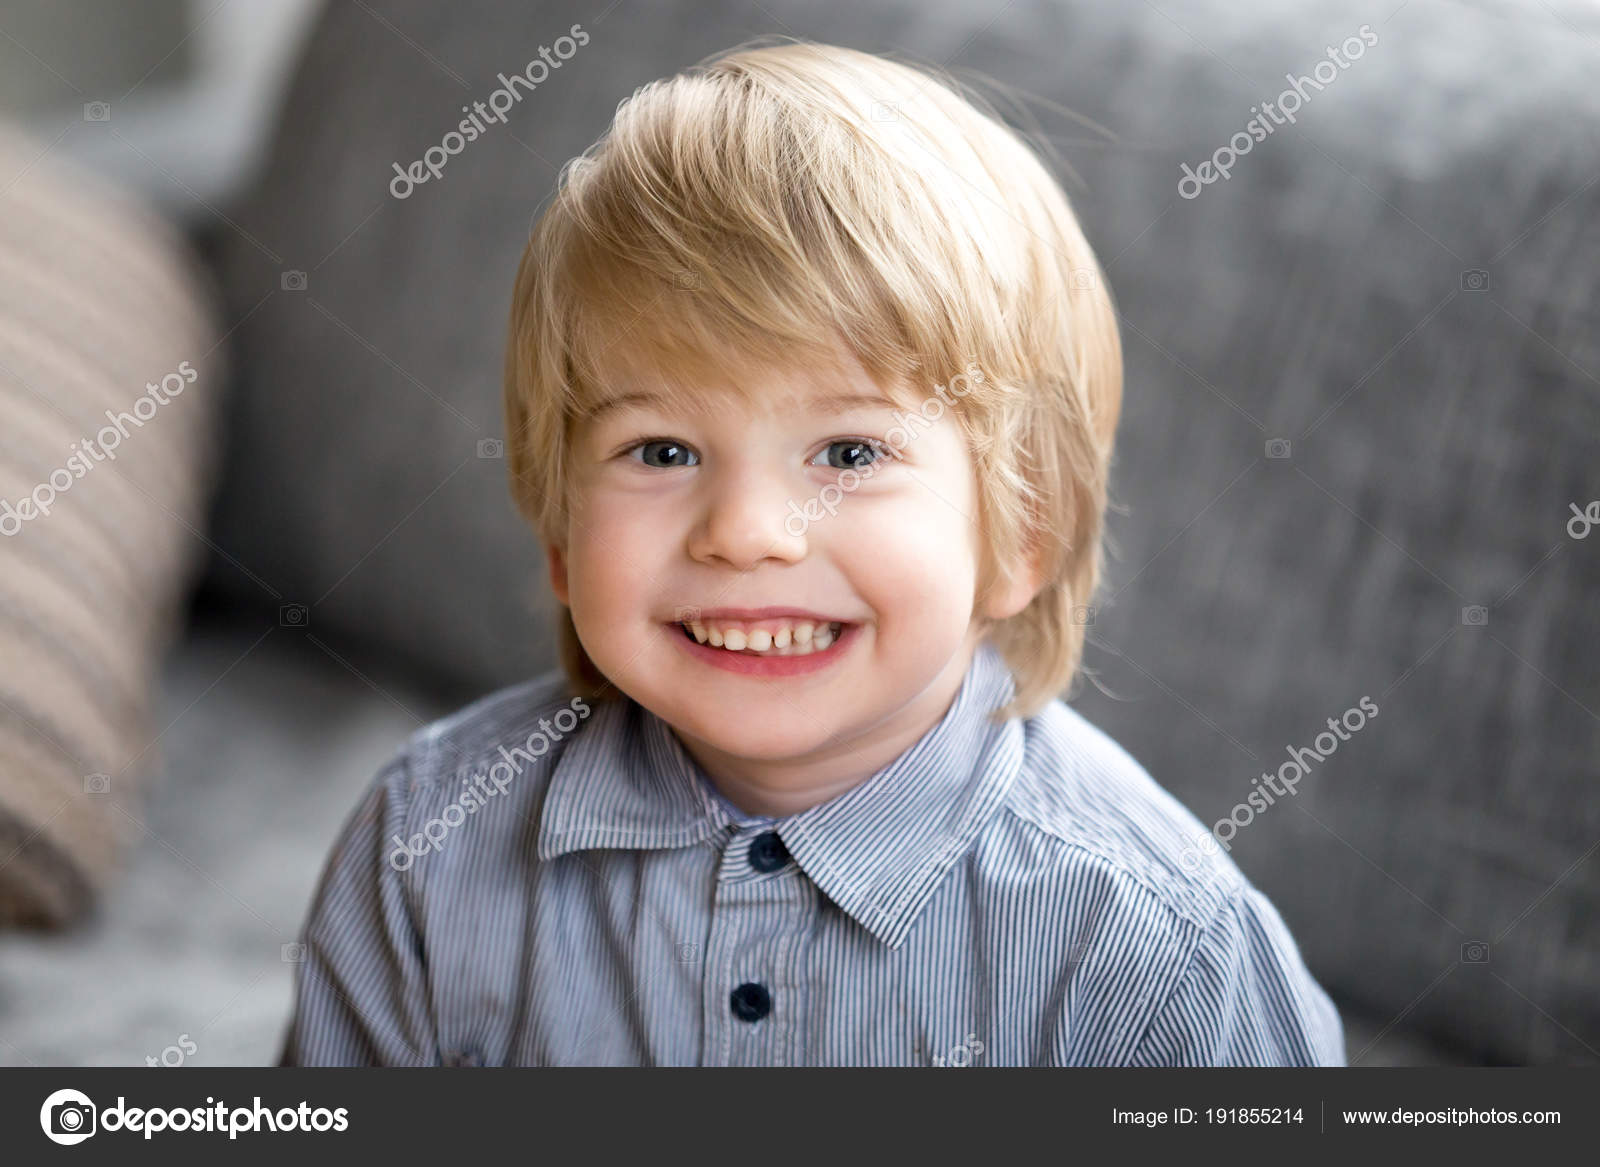 Headshot Portrait Of Cute Smiling Kid Boy Looking At Camera Stock